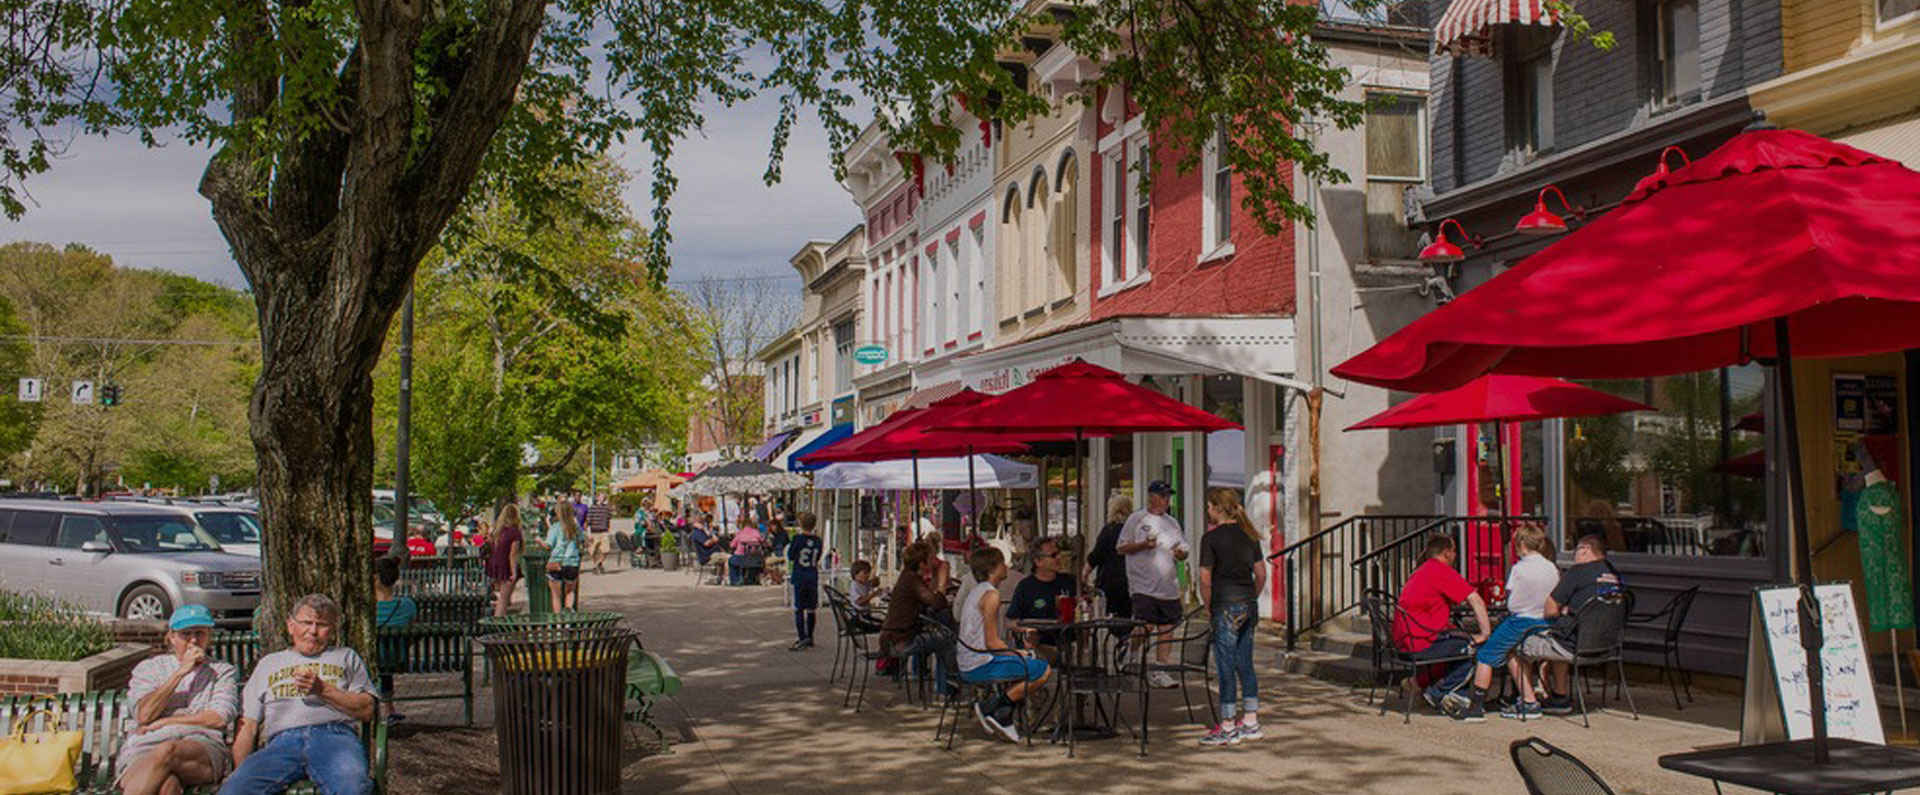 people spending time at an outdoor cafe in granville ohio